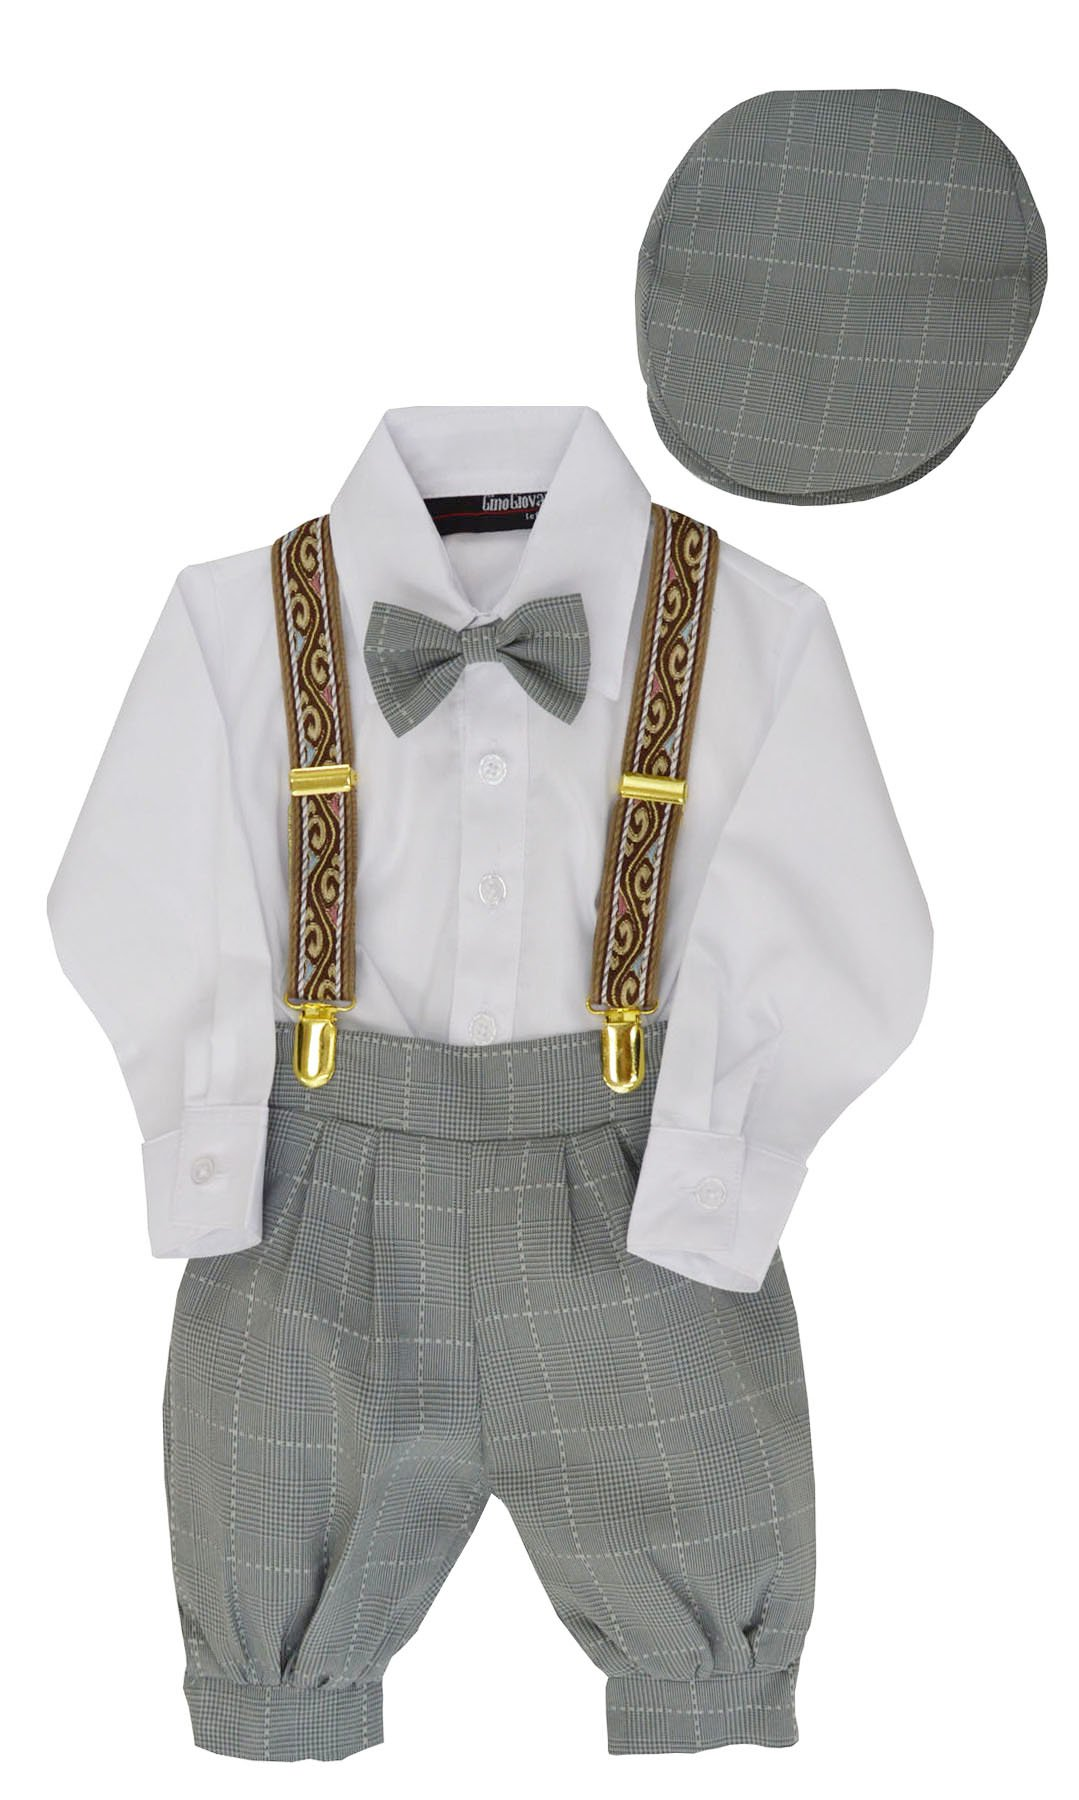 G284 Boys Vintage Knickers Outfit Suspenders (Large/12-18 Months, Silver)